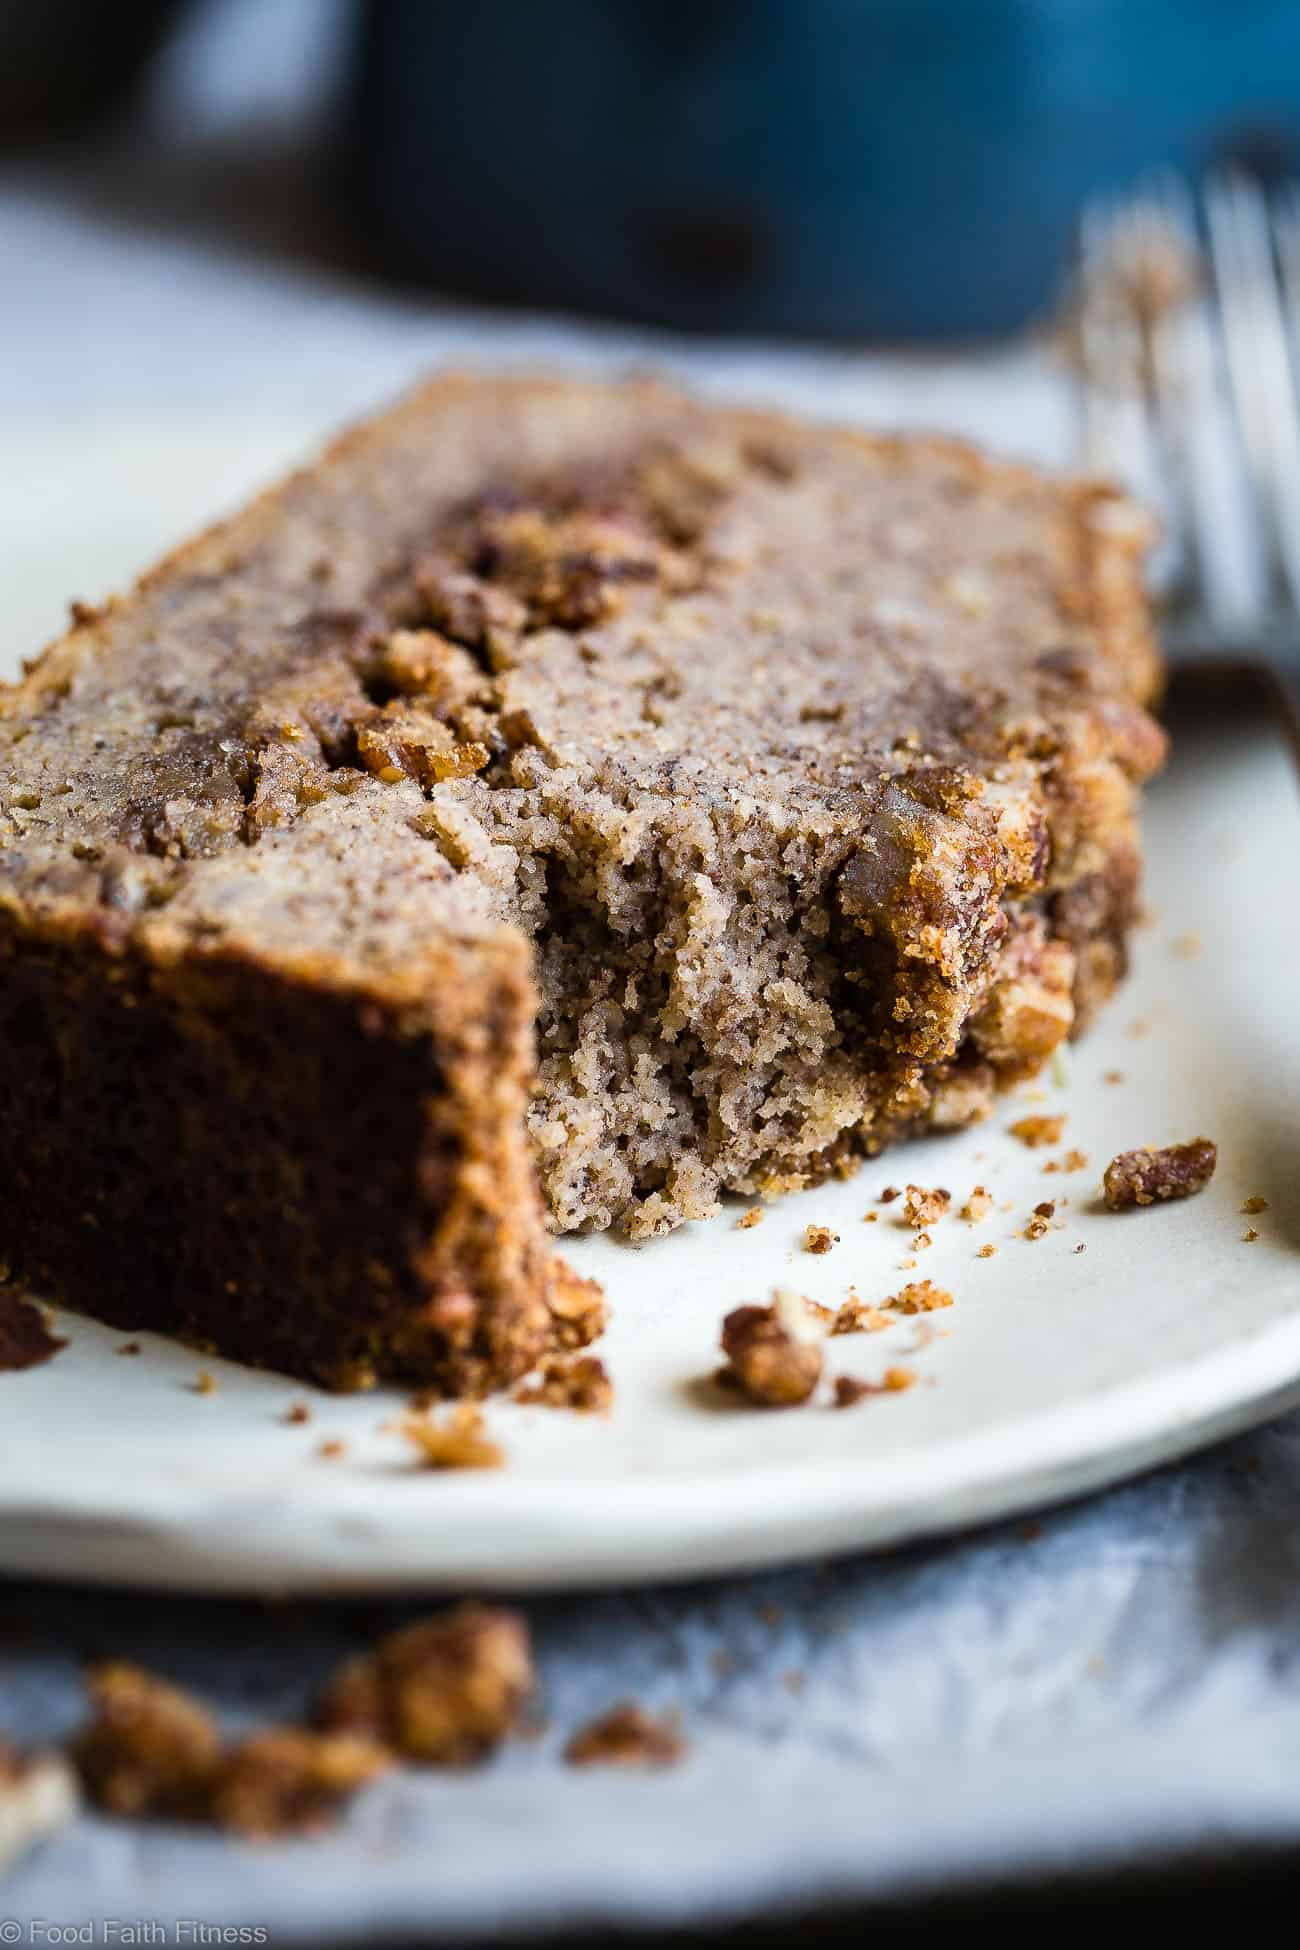 The Best Paleo Banana Bread with Pecan Streusel -This easyPaleo Coconut Flour Banana Bread is gluten/grain/dairy/refined sugar free but perfectly moist and sweet! The pecan topping MAKES it so addicting and you'll never know it's healthy! | Foodfaithfitness.com | @FoodFaithFit